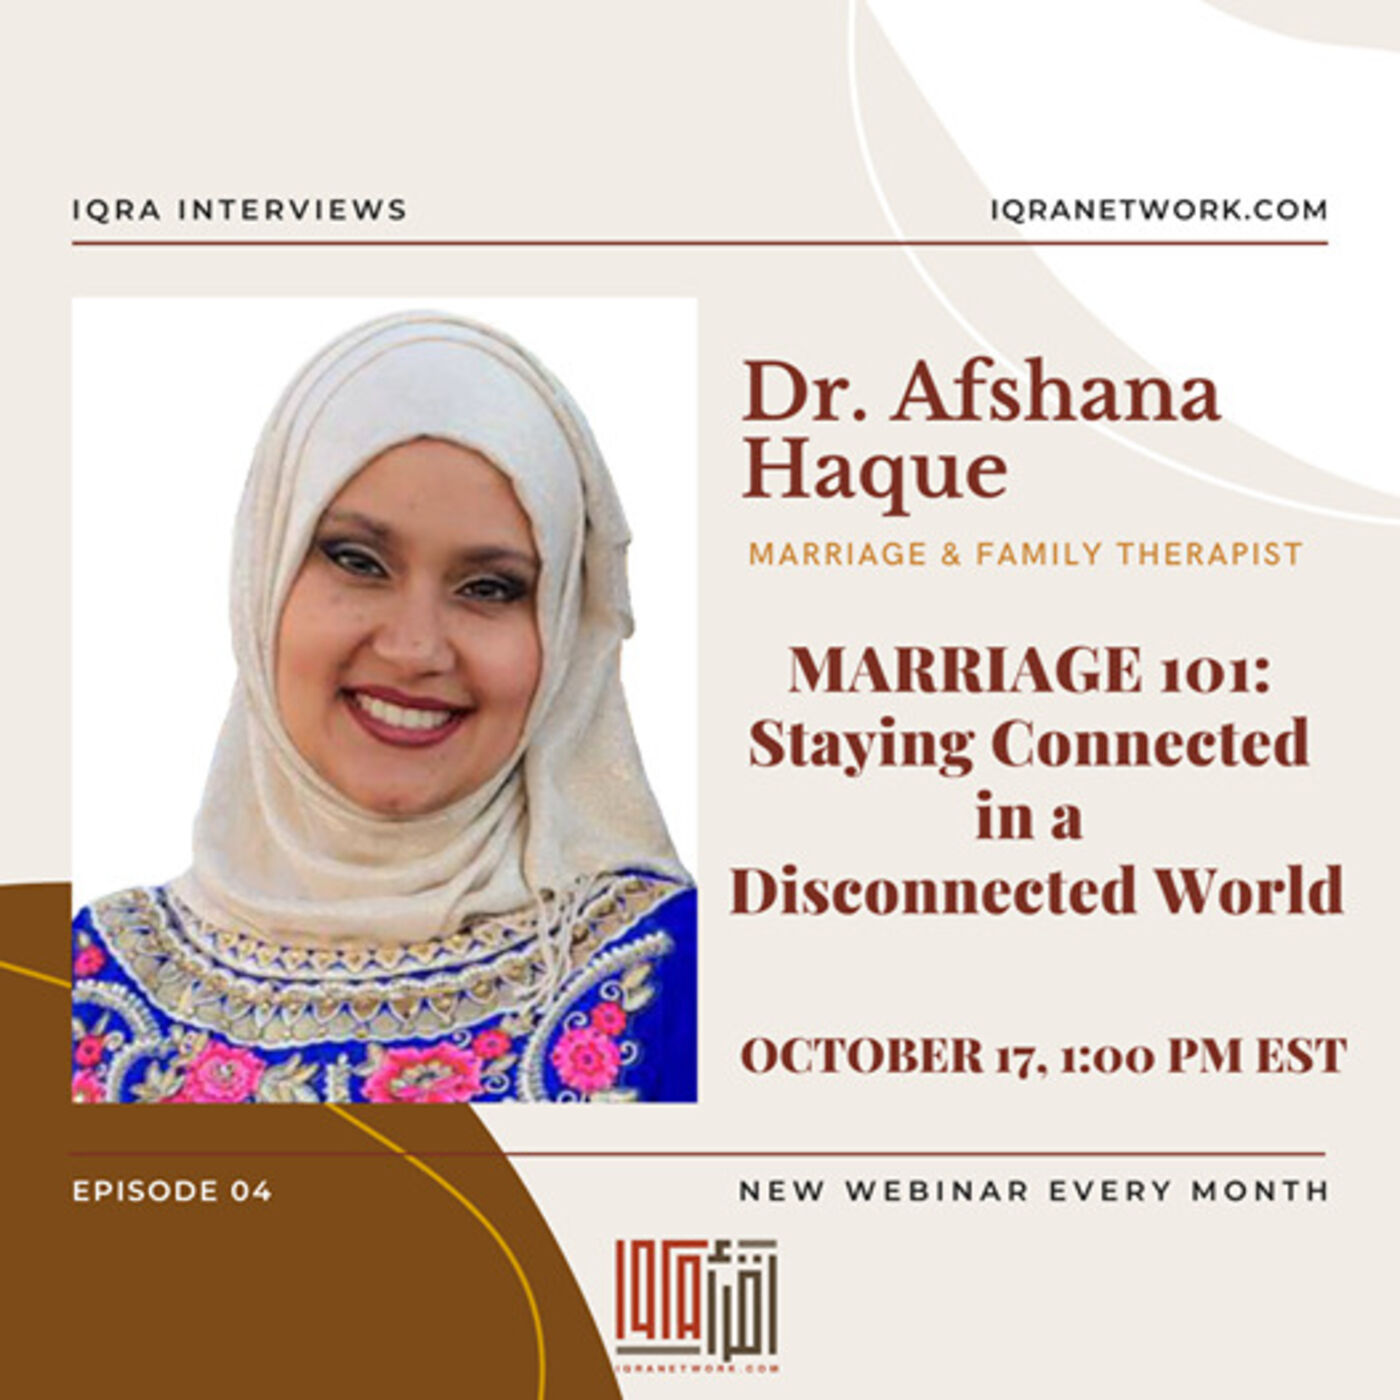 Marriage 101: Staying Connected in a Disconnected World | Interview with Dr. Afshana Haque